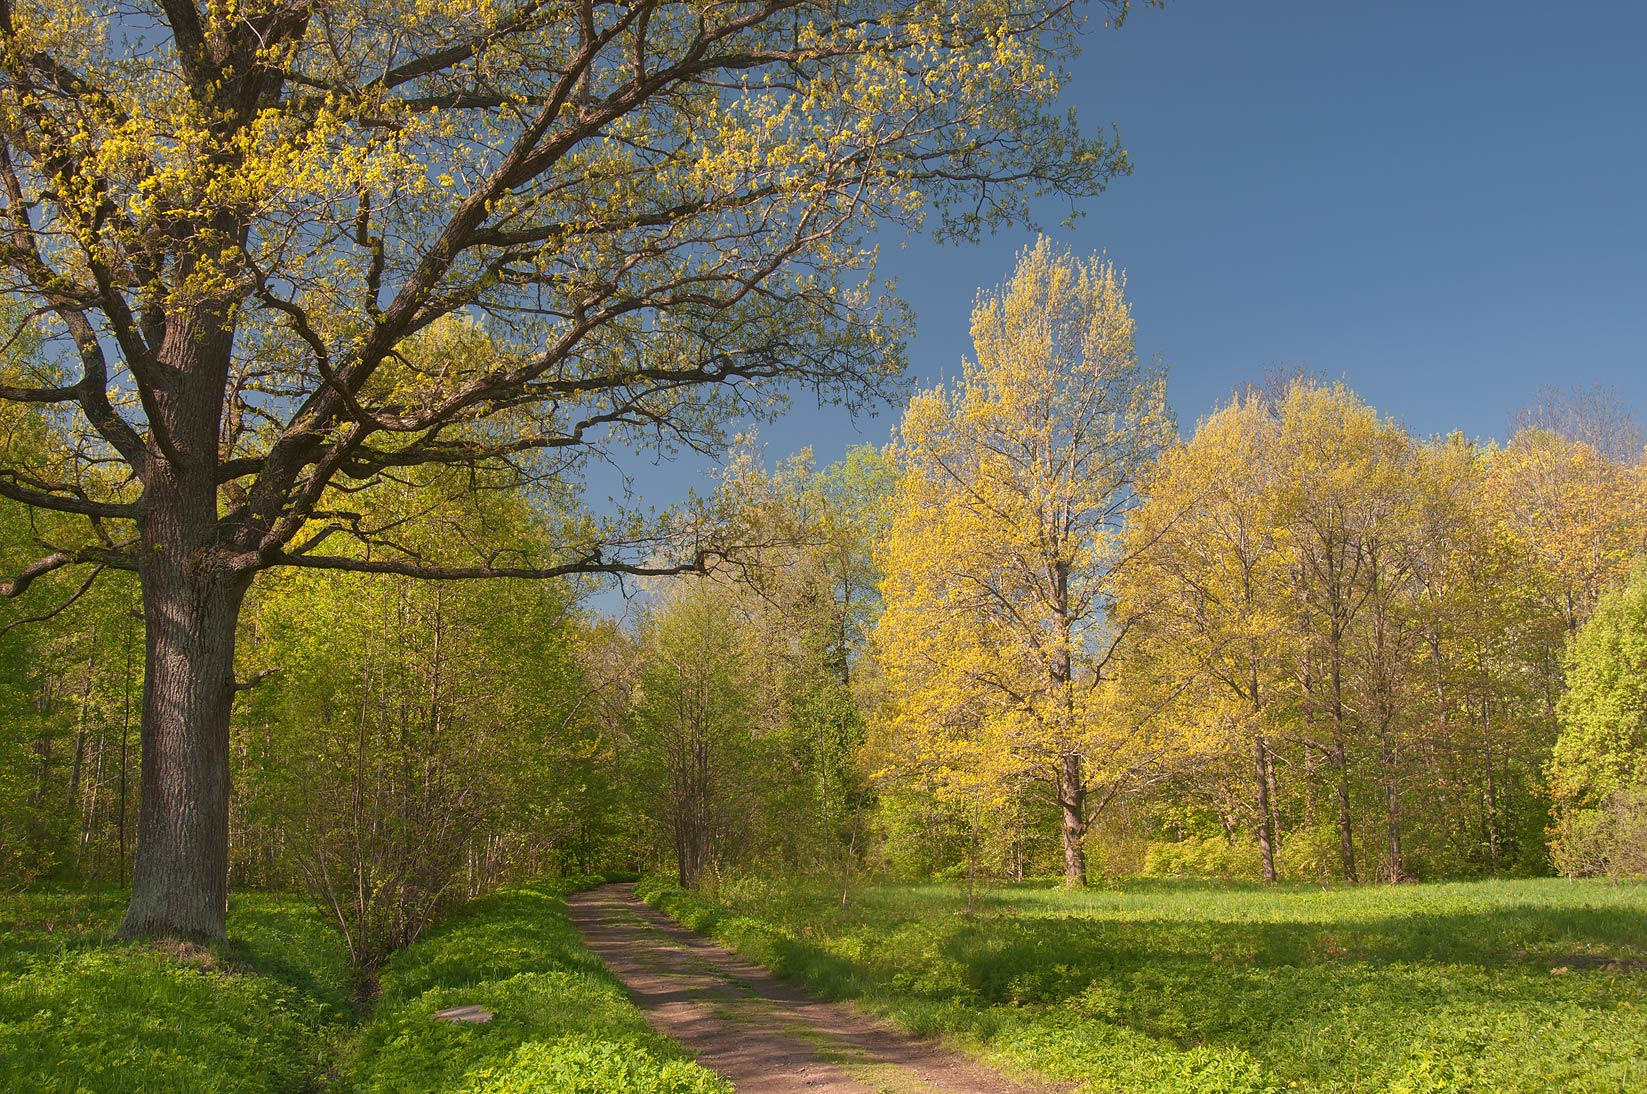 Road in a park of Lomonosov (Oranienbaum). West from St.Petersburg, Russia